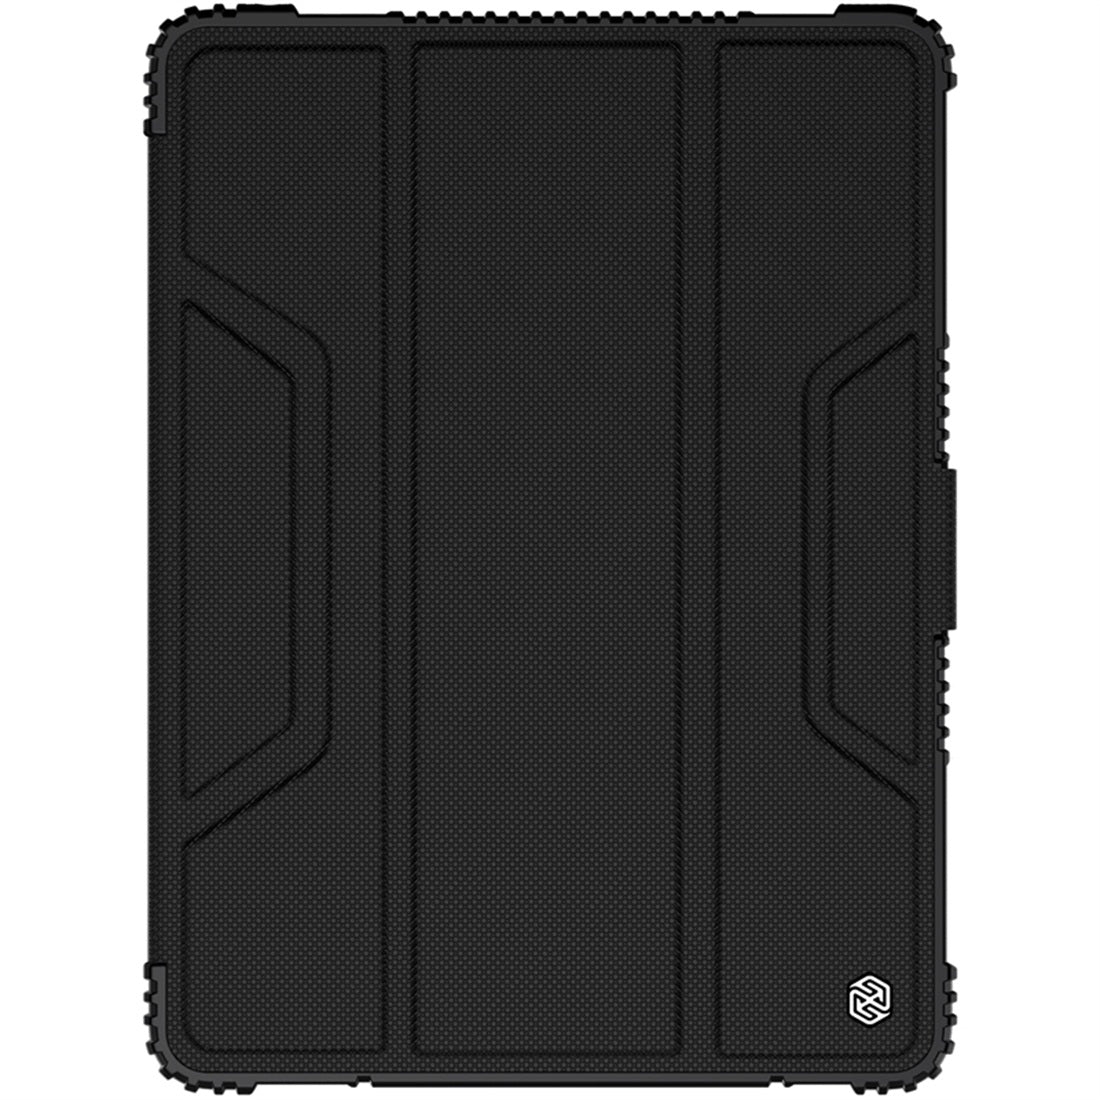 For iPad 10.2 NILLKIN Full Coverage Horizontal Flip Leather Case with Holder & Pen Slot & Sleep / Wake-up Function(Black)